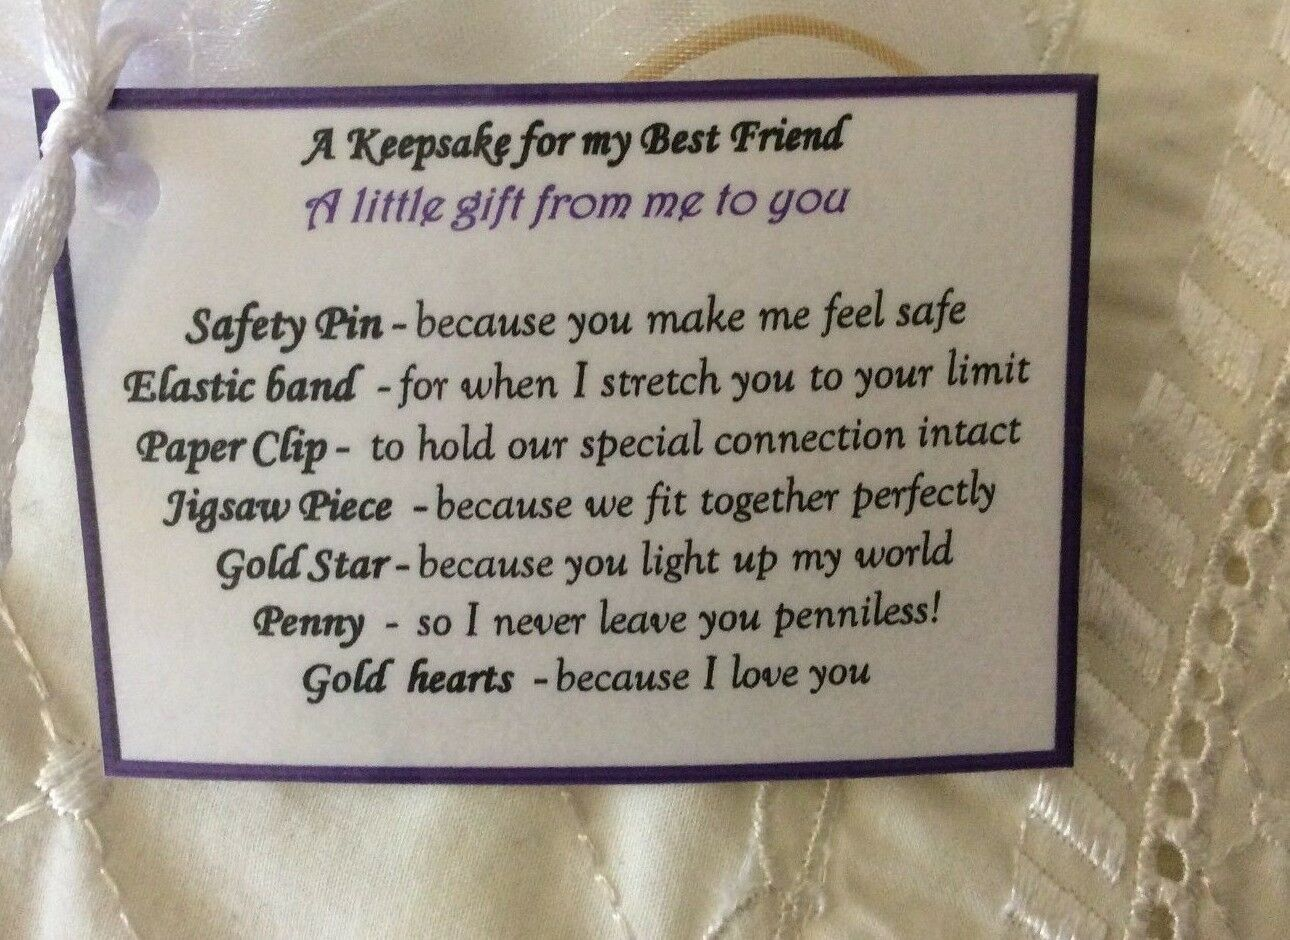 Details About Keepsafe Thank You Gift For My Best Friend Birthday Her Women Present